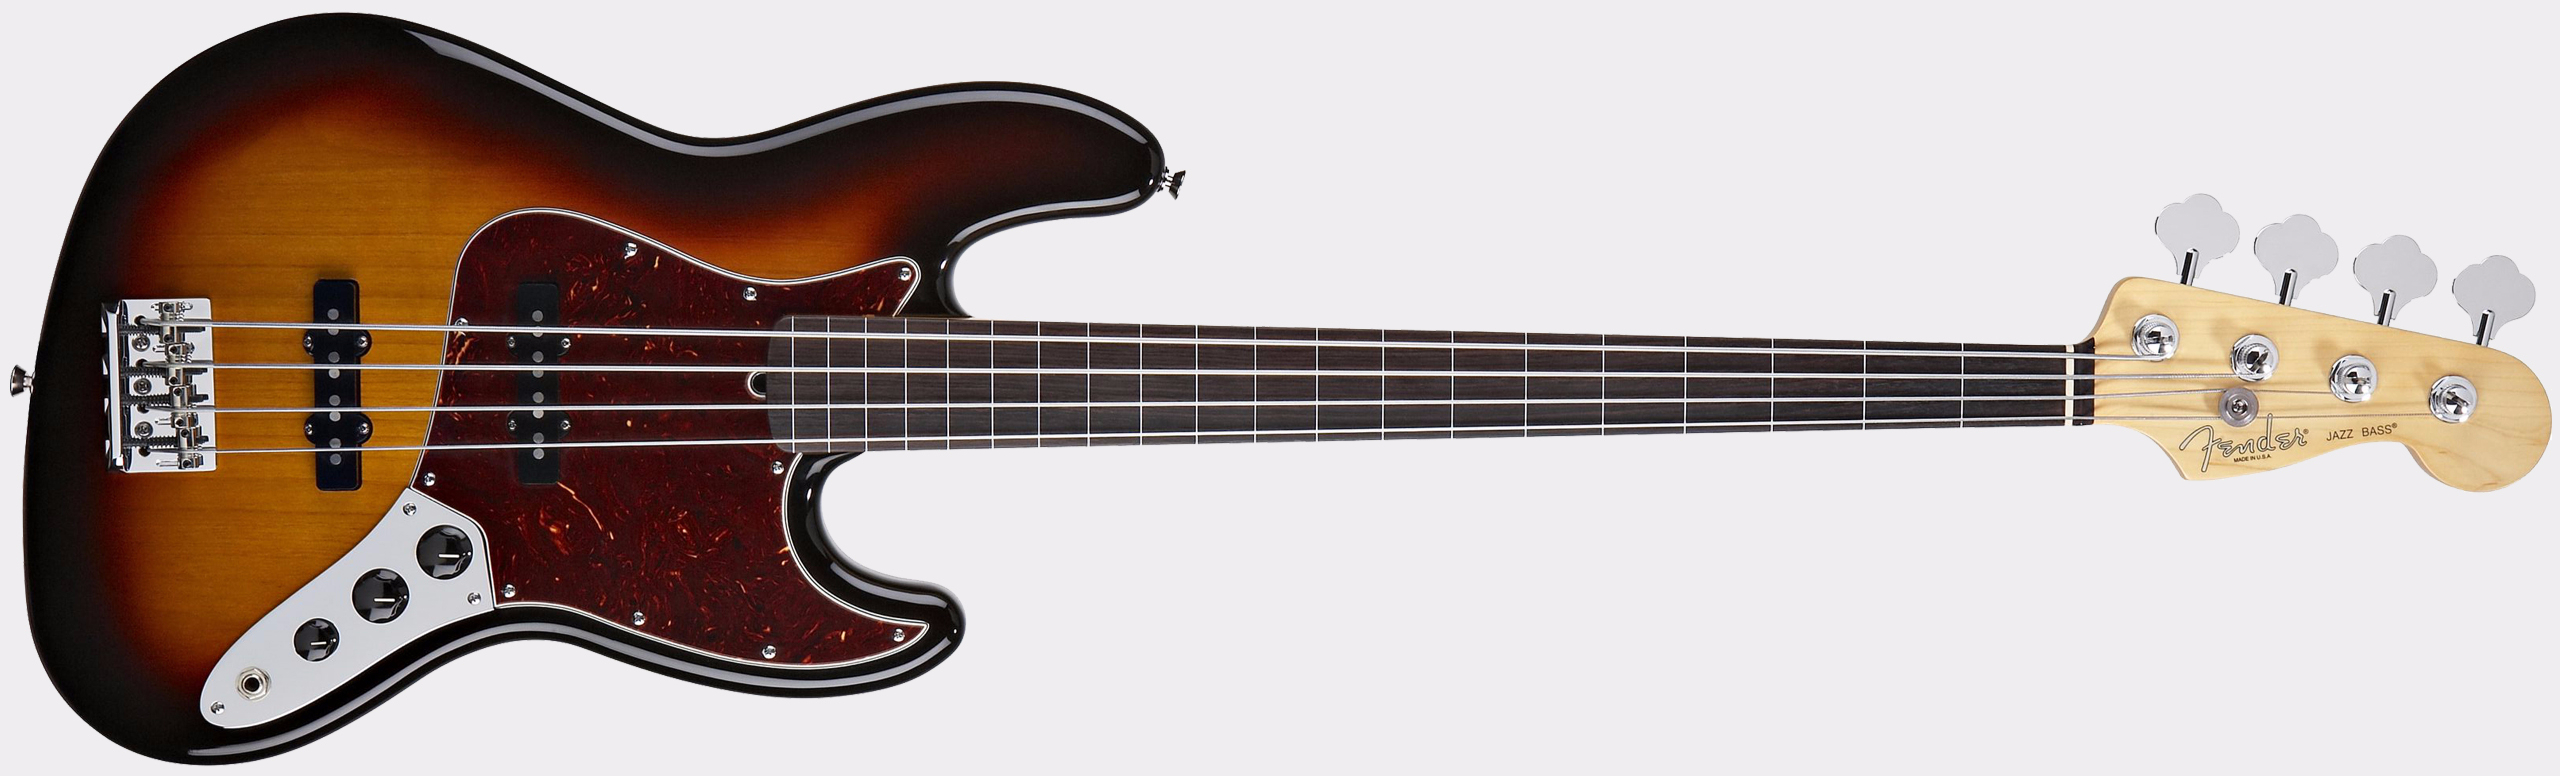 FENDER American Standard Jazz Bass Fretless 3-Color Sunburst